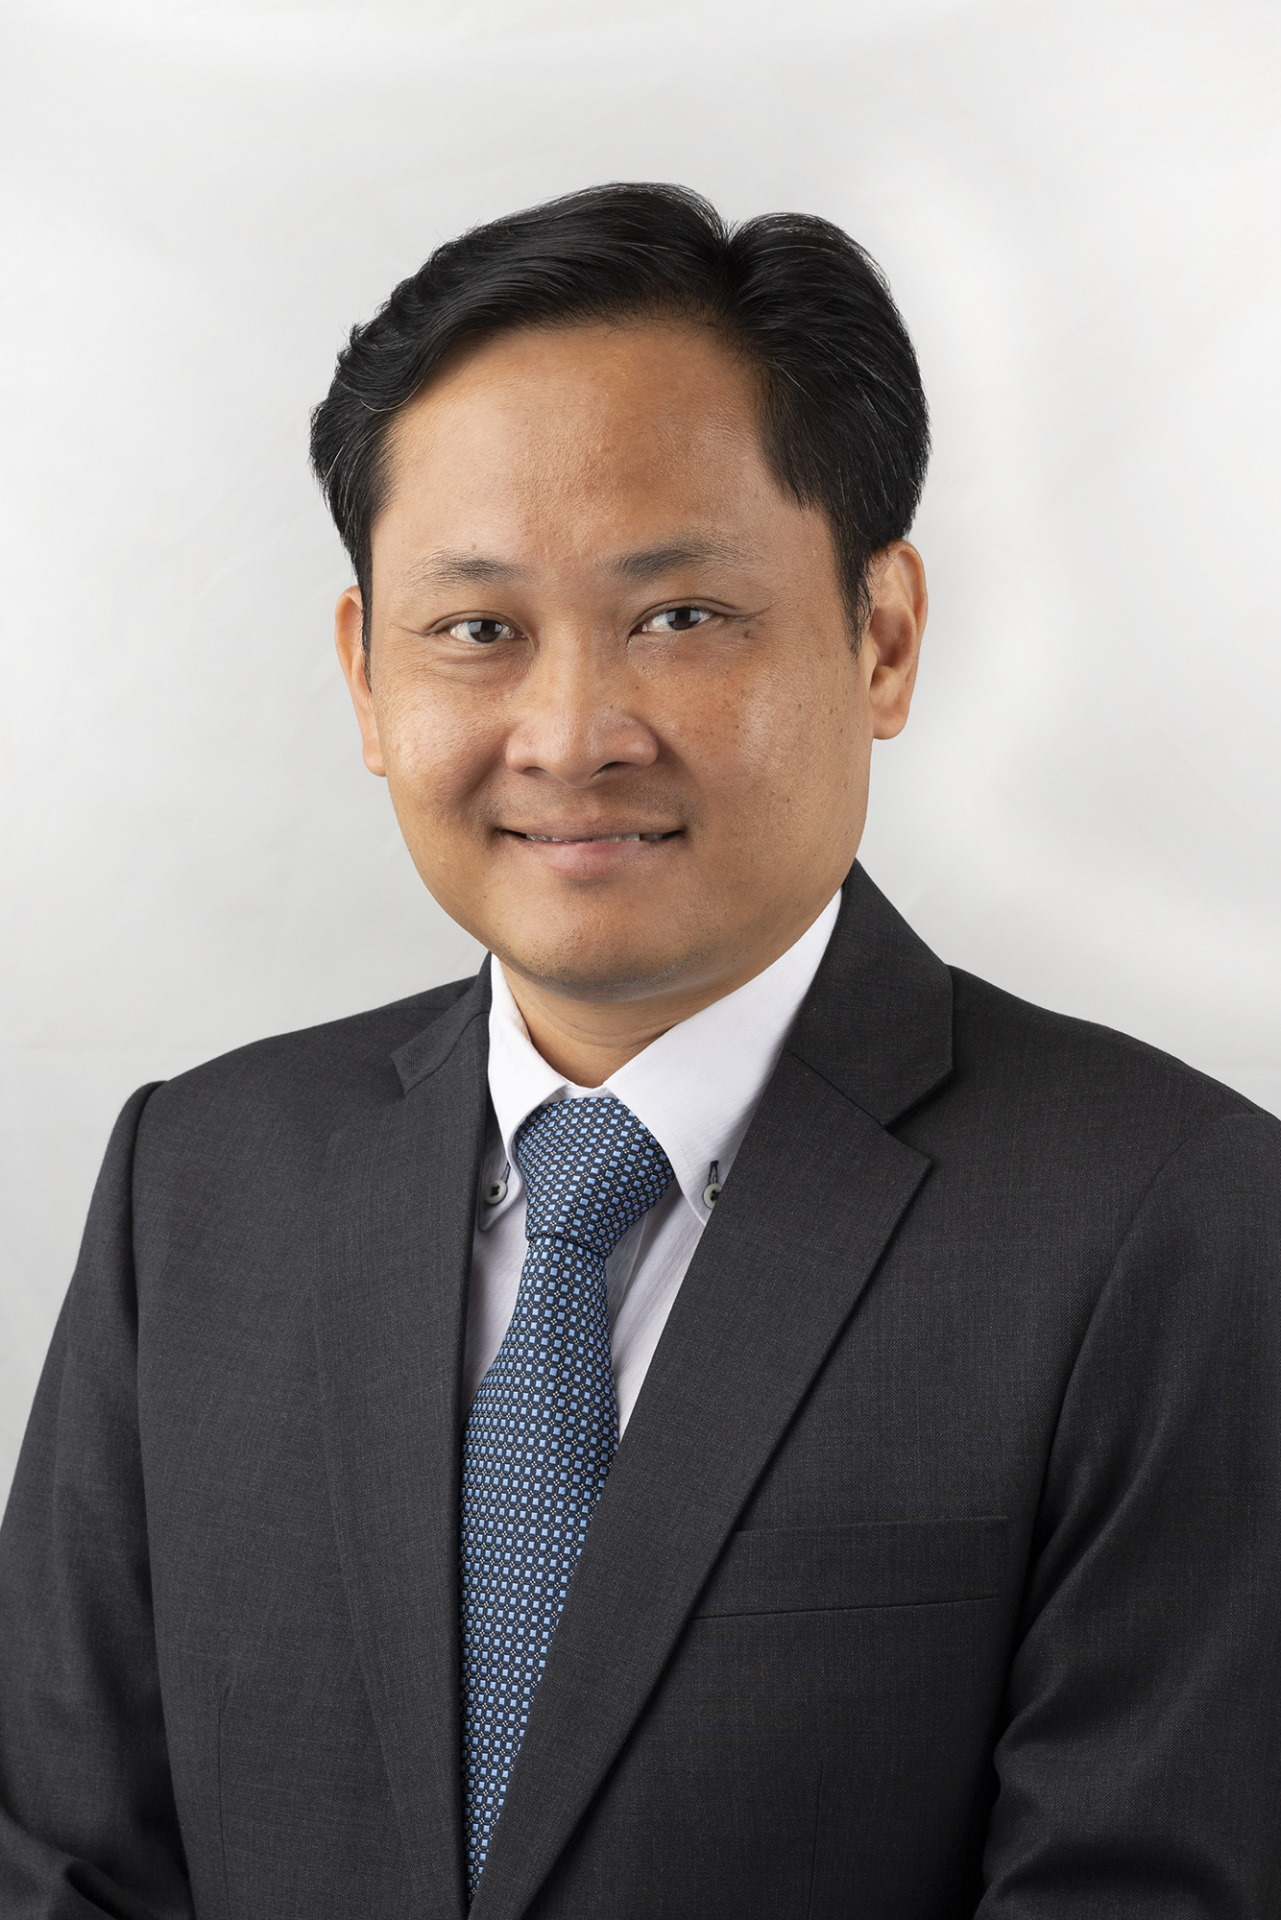 Mr Mervyn Tan Wei Ming, currently Deputy Secretary (Technology) and Future Systems and Technology Architect, will take over as CE DSTA on 15 May 2021.